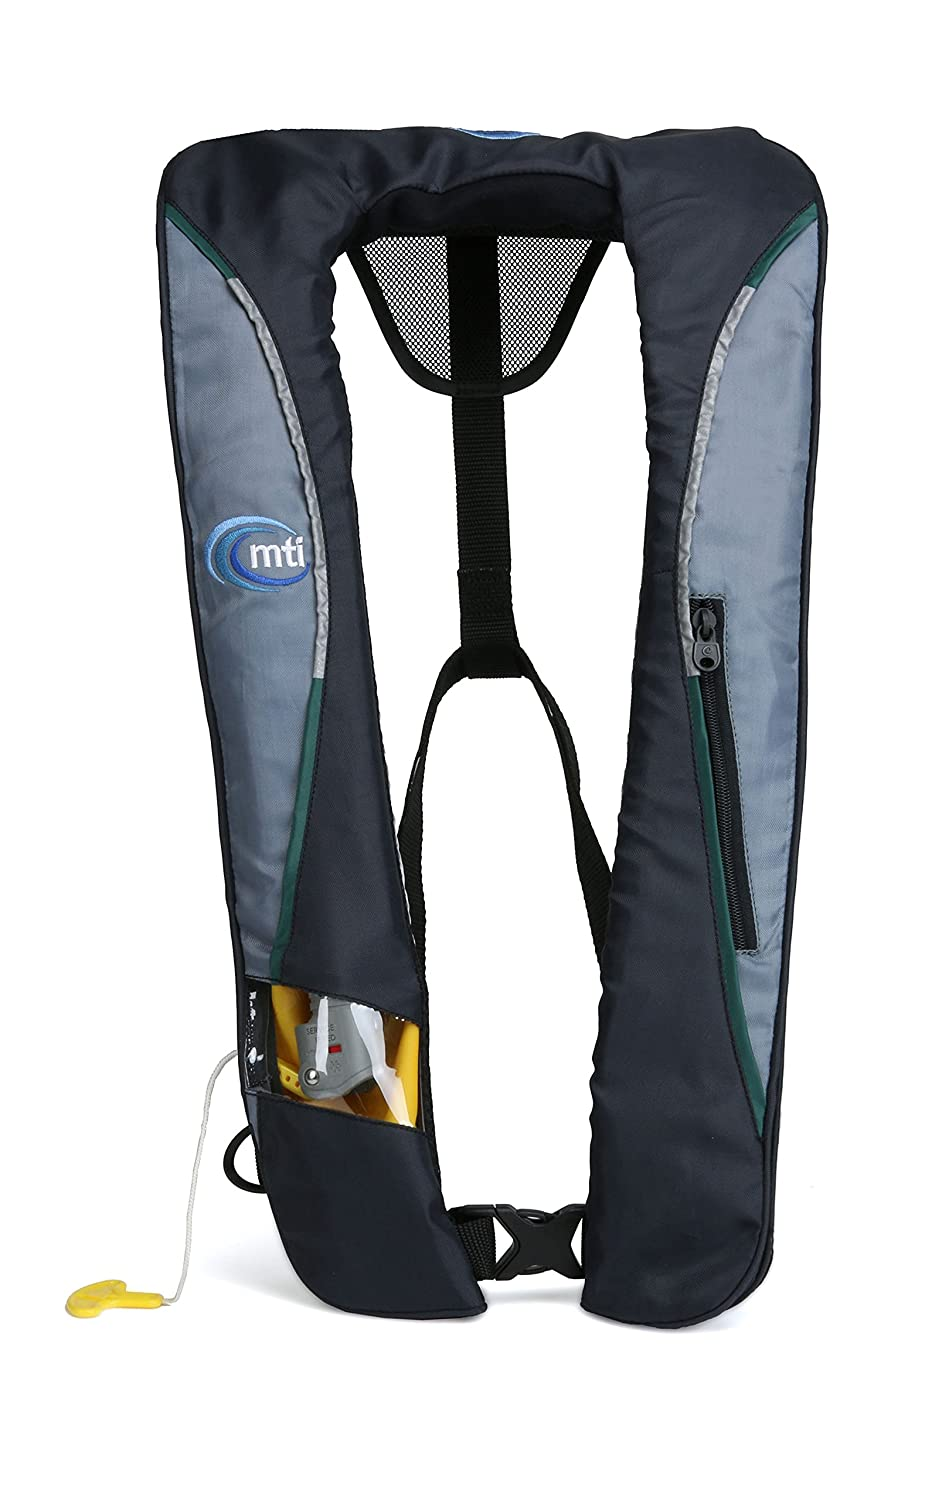 MTI Adventurewear Helios 2.0 Inflatable